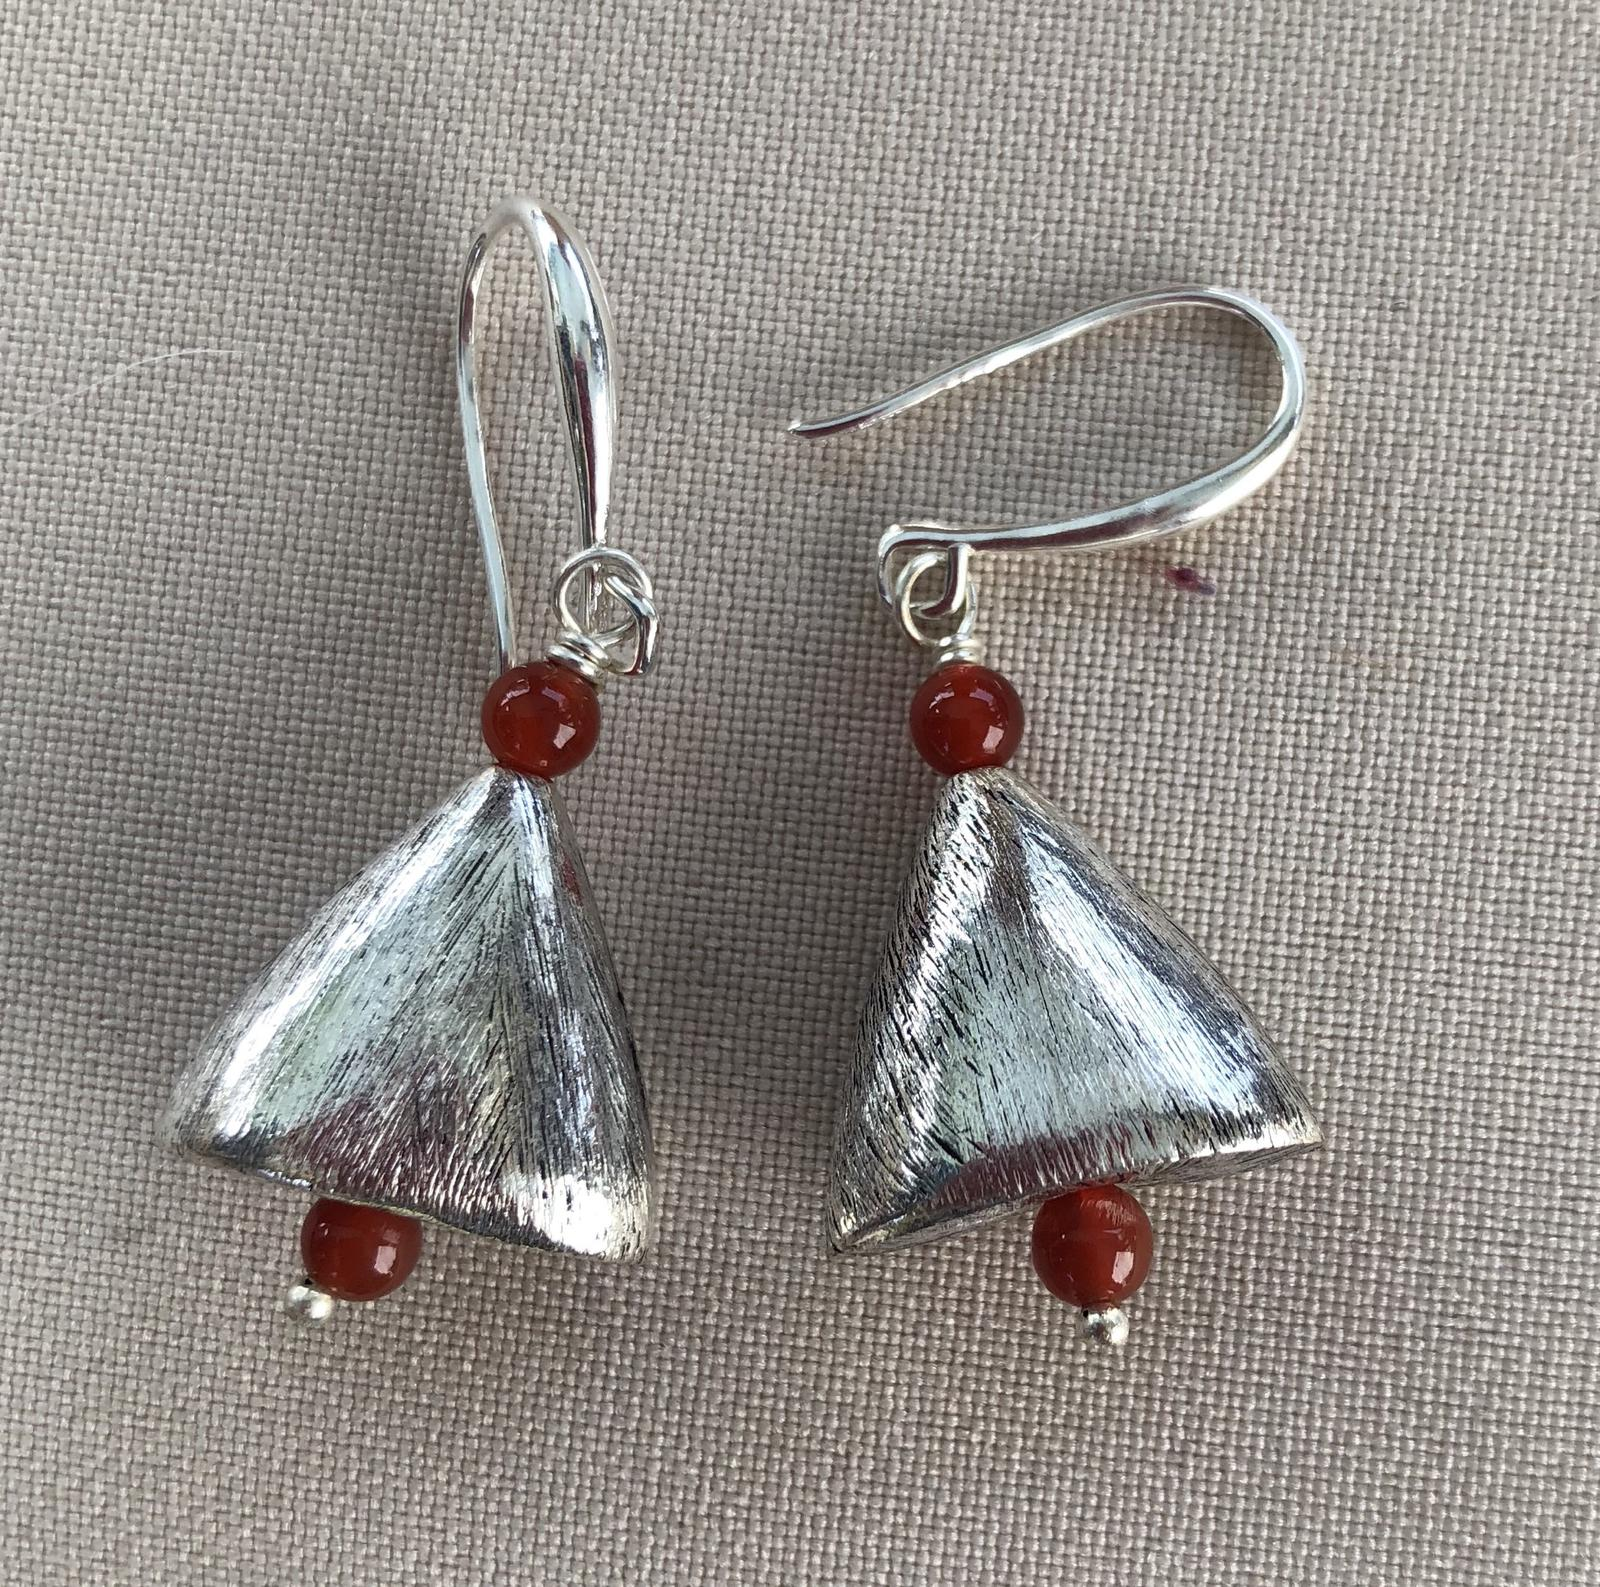 Sterling silver plate and carnelian beads earrings